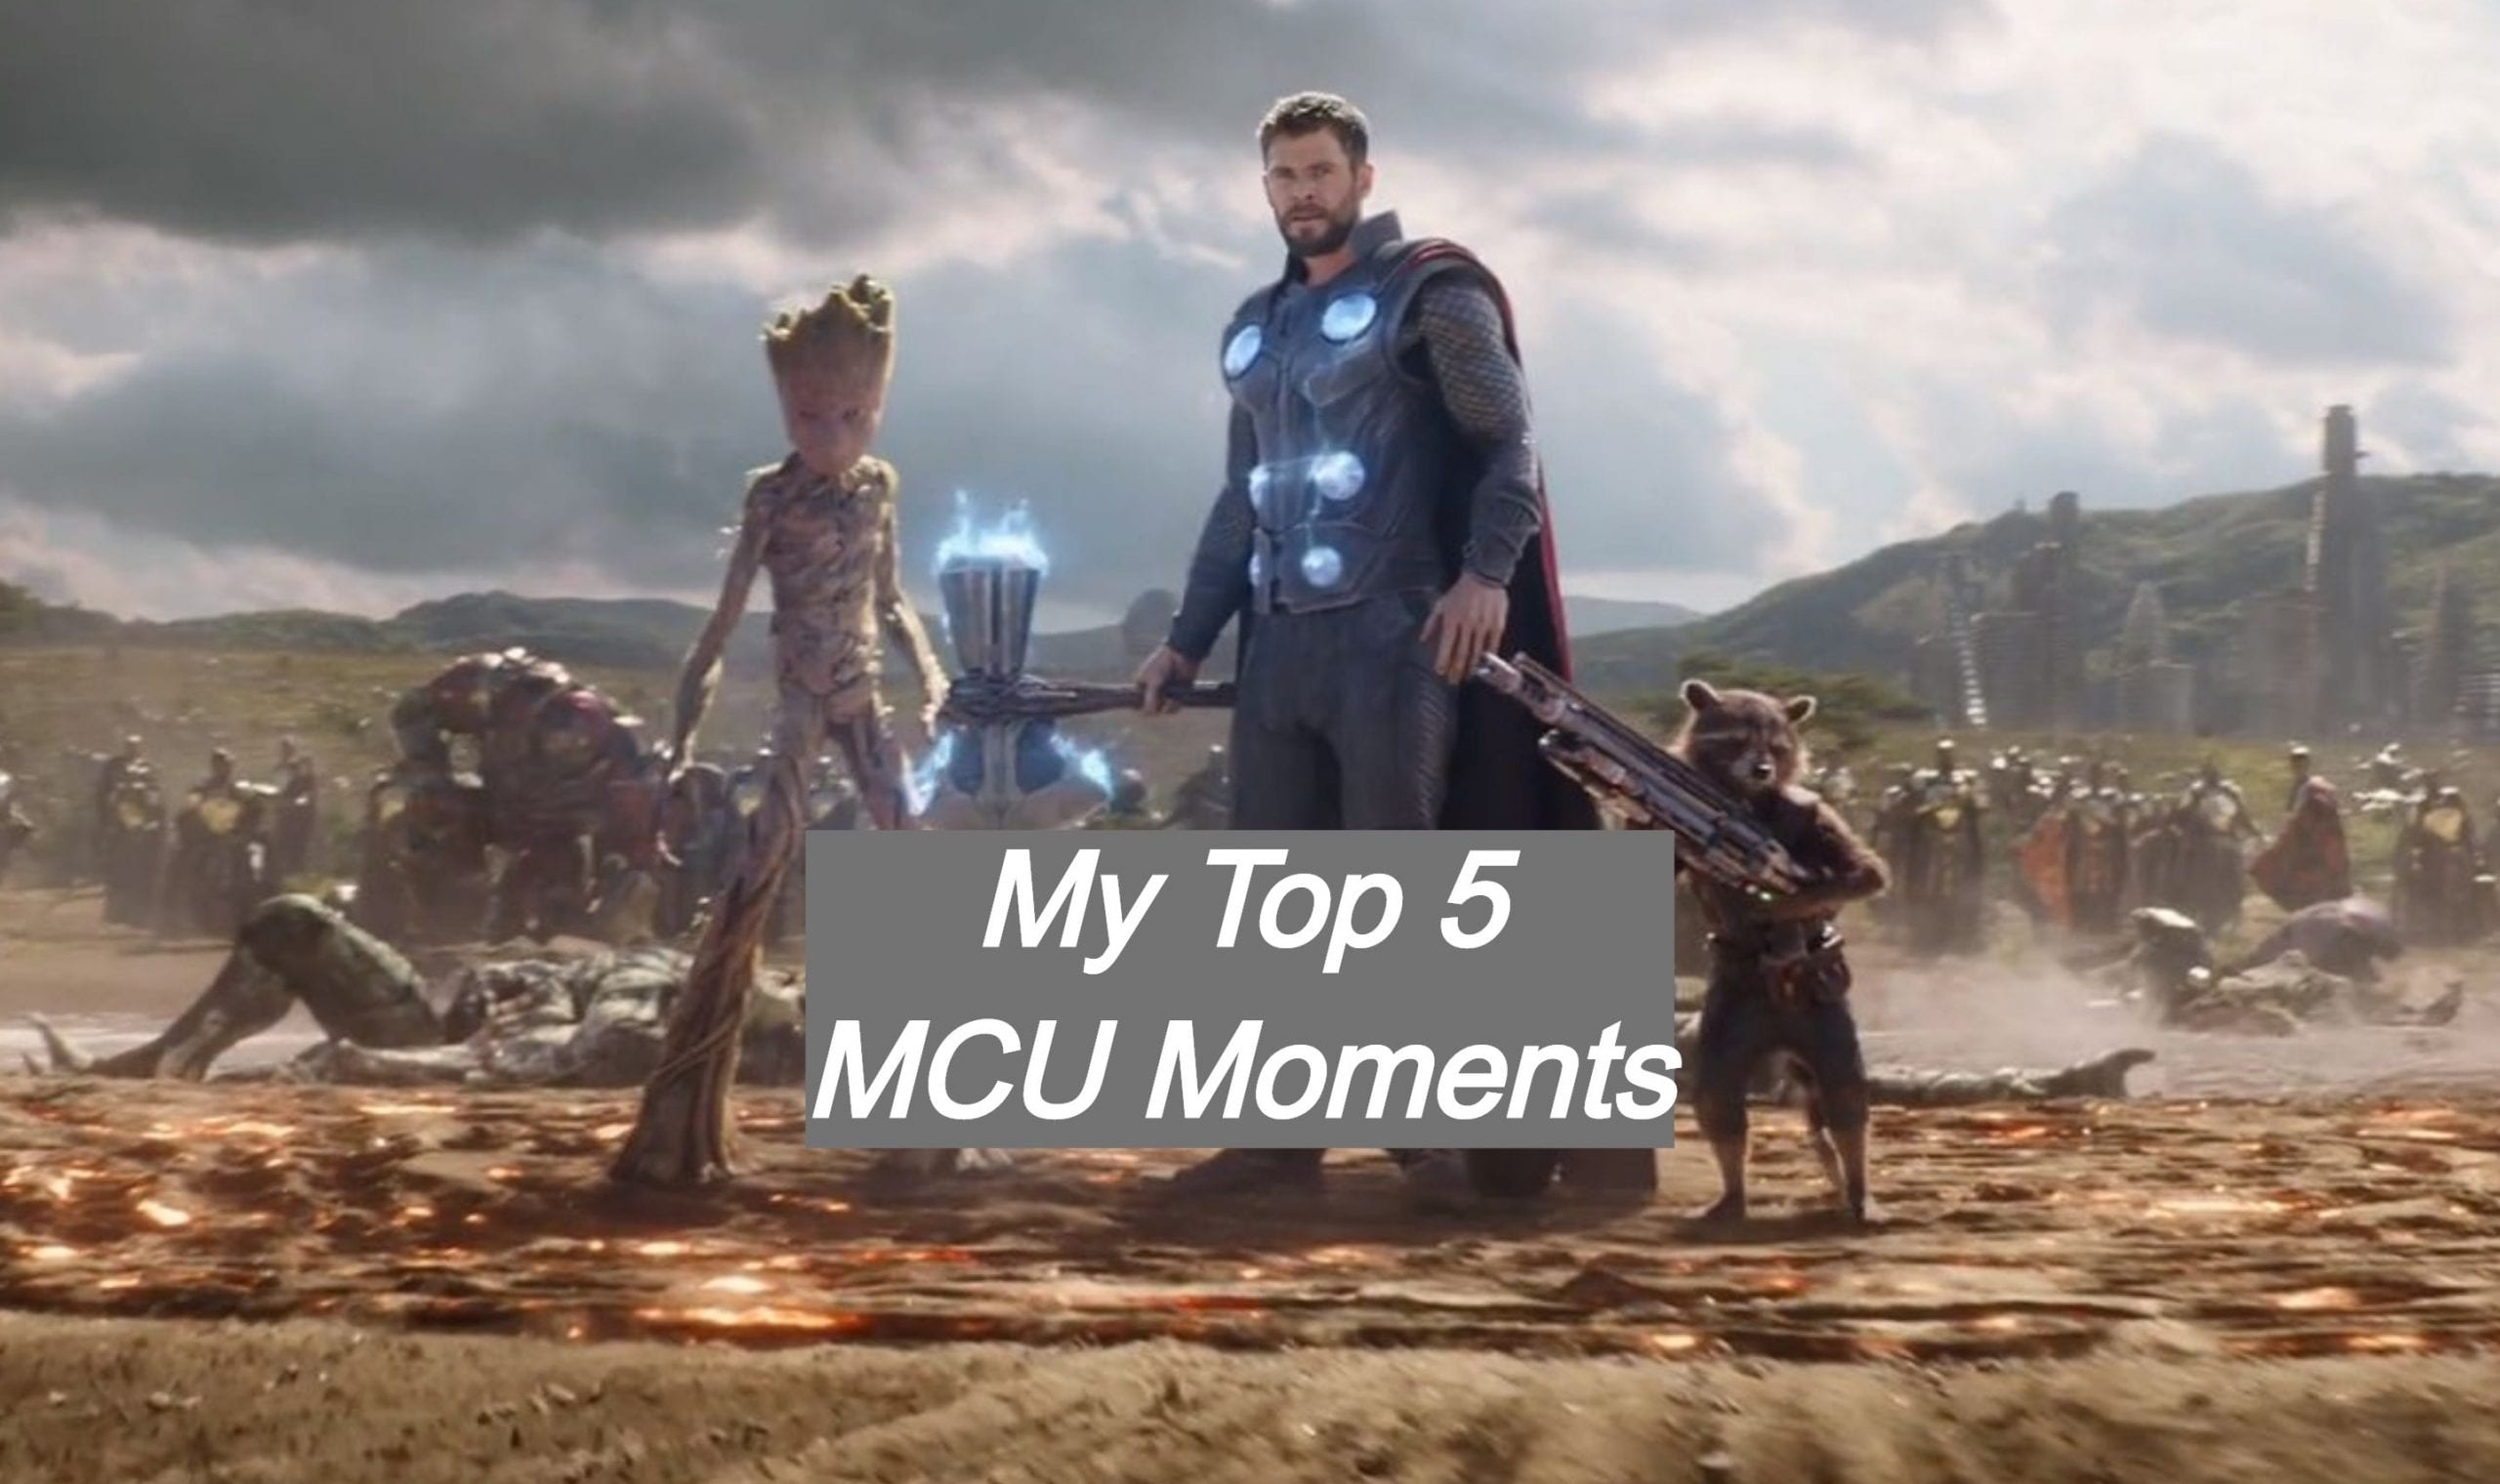 My Top 5 Favorite MCU Moments